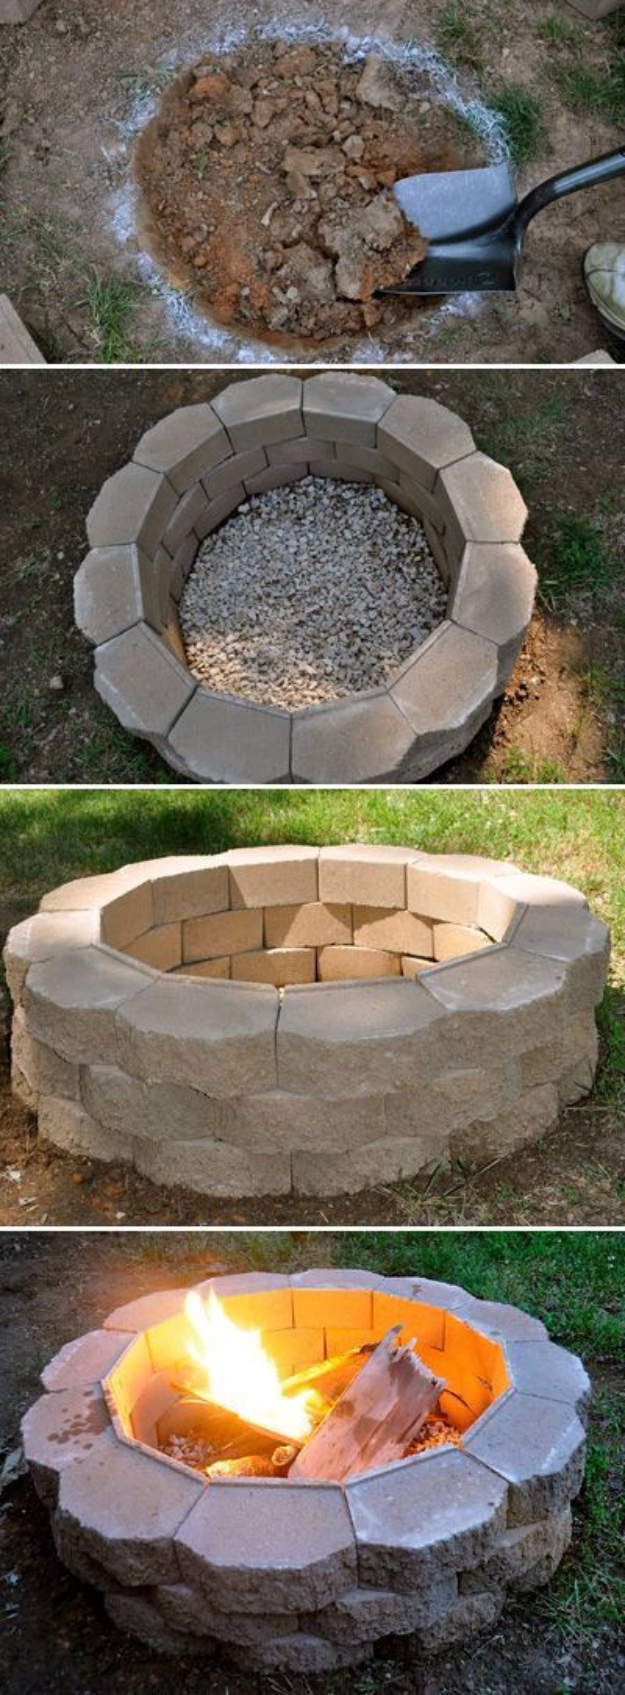 31 DIY Outdoor Fireplace and Firepit Ideas - photo#8